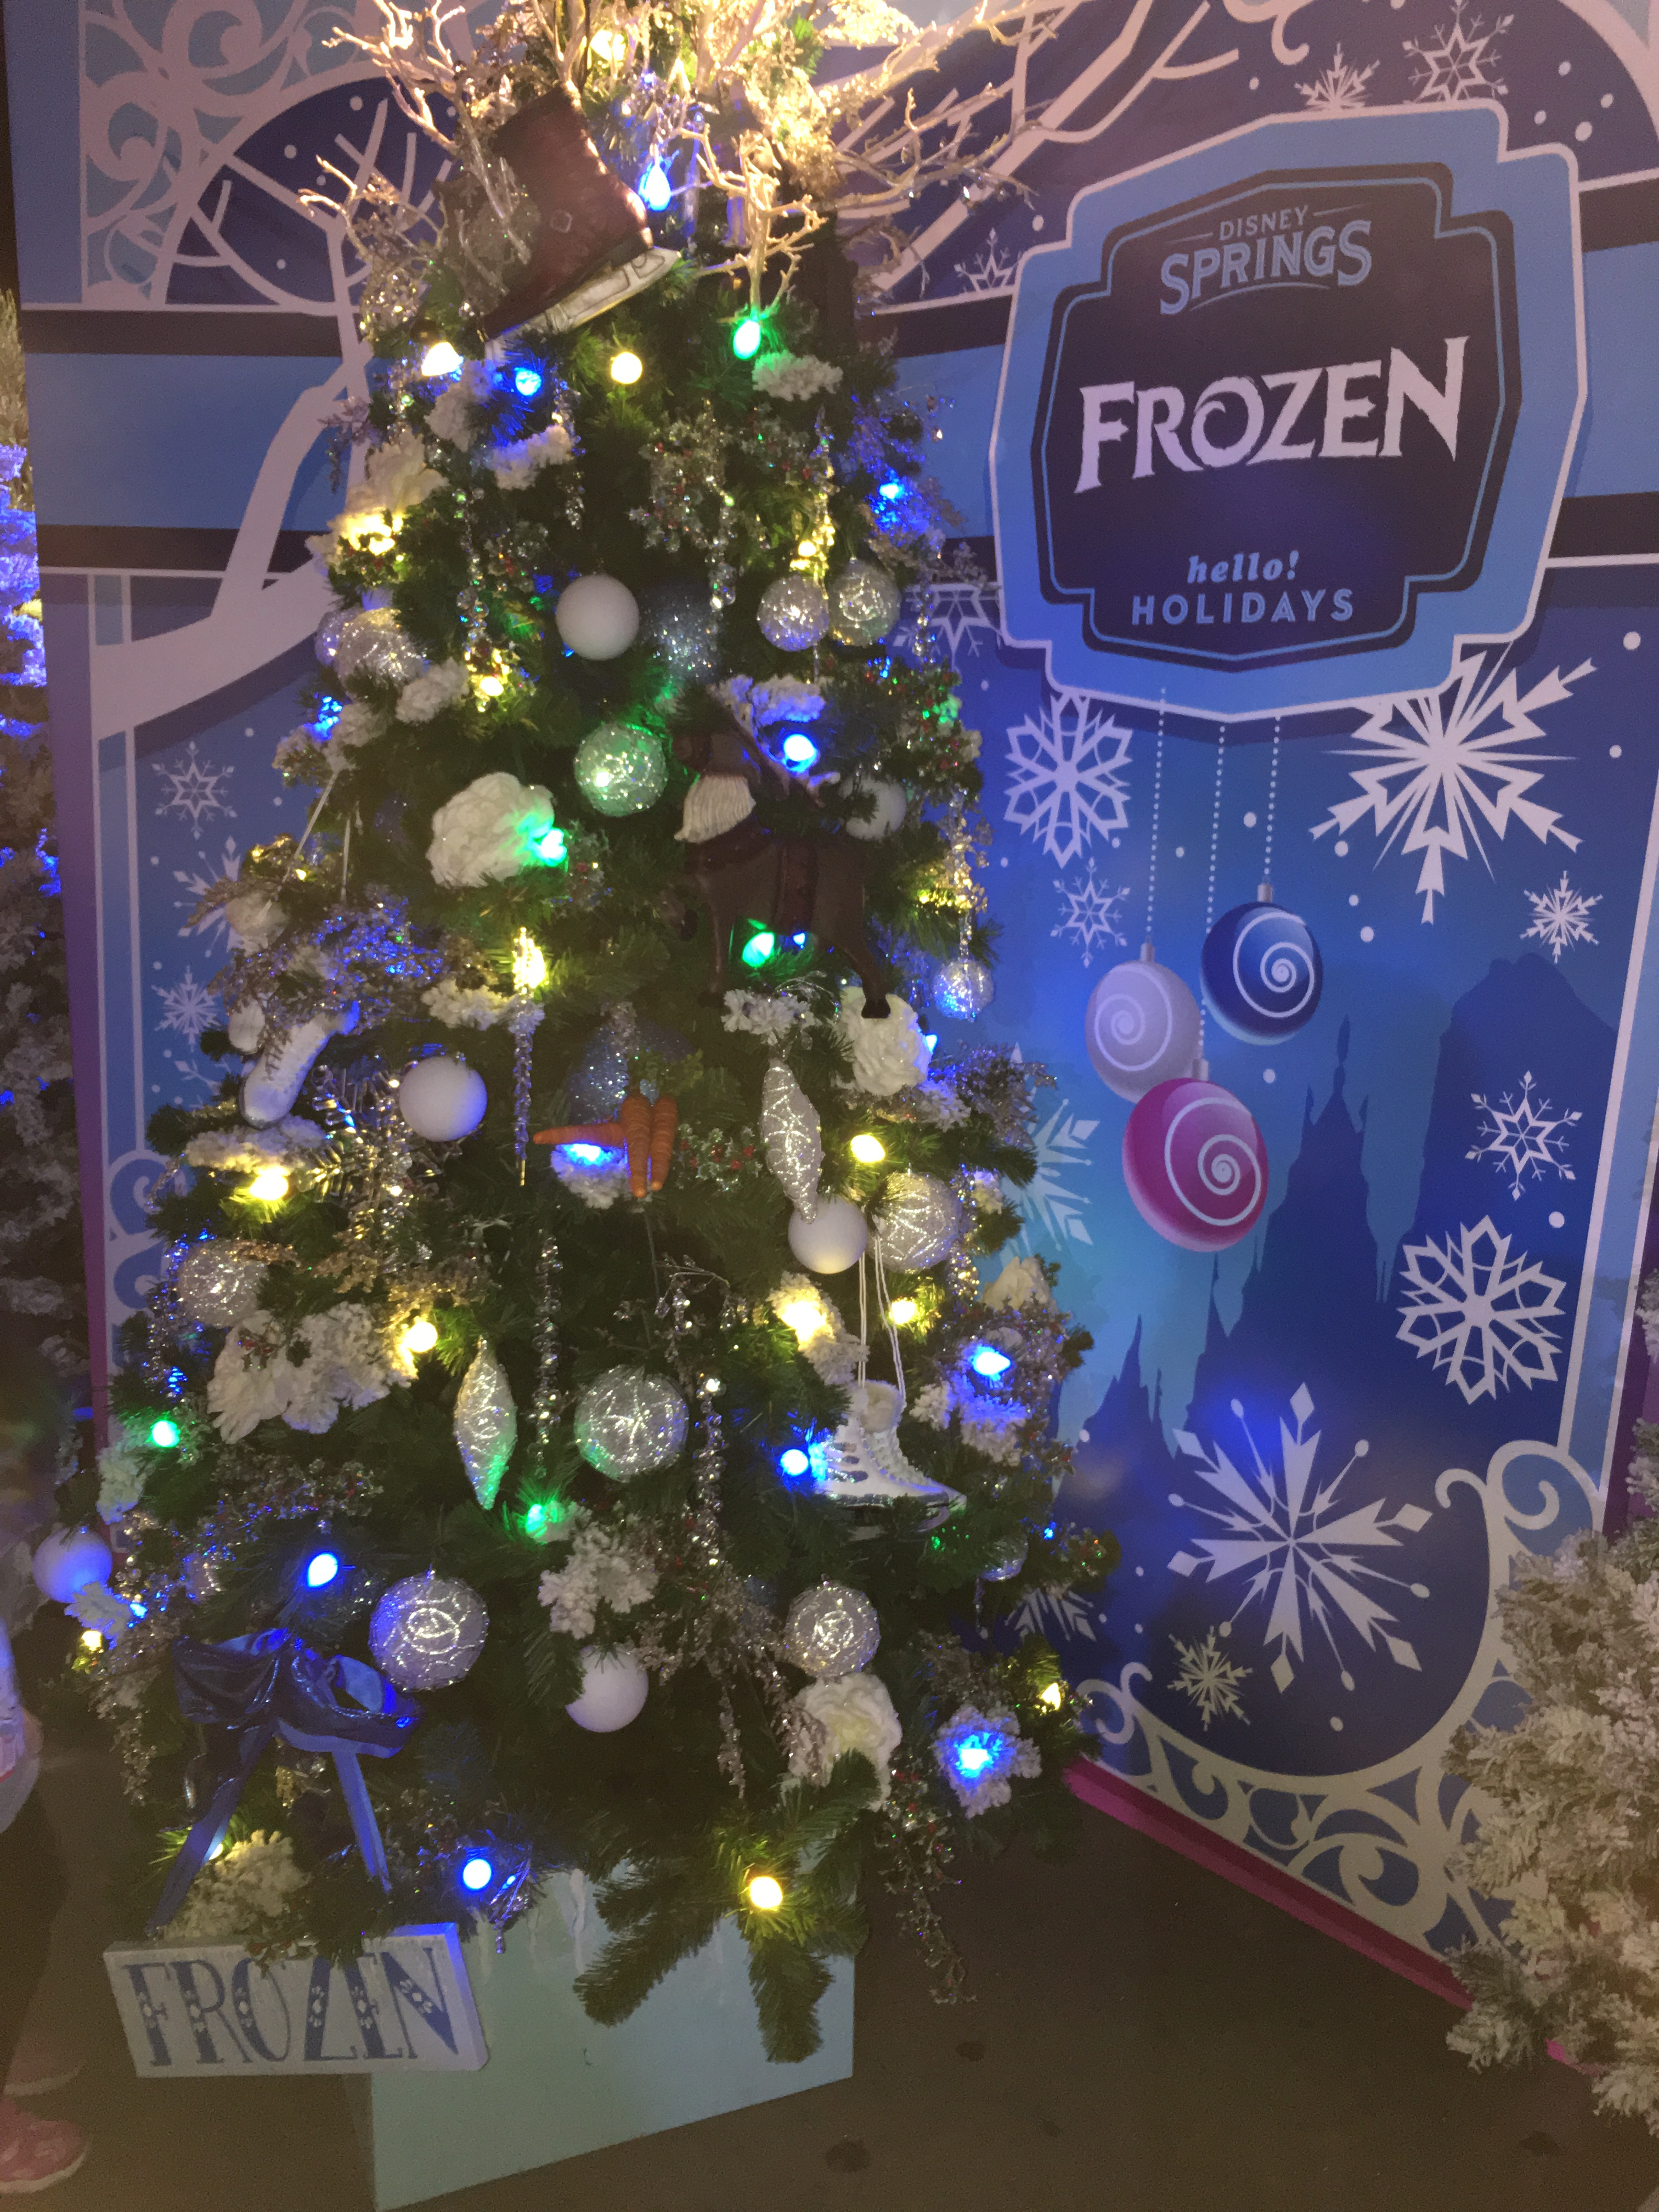 Frozen Holiday Tree Trail at Disney Springs Orlando FL